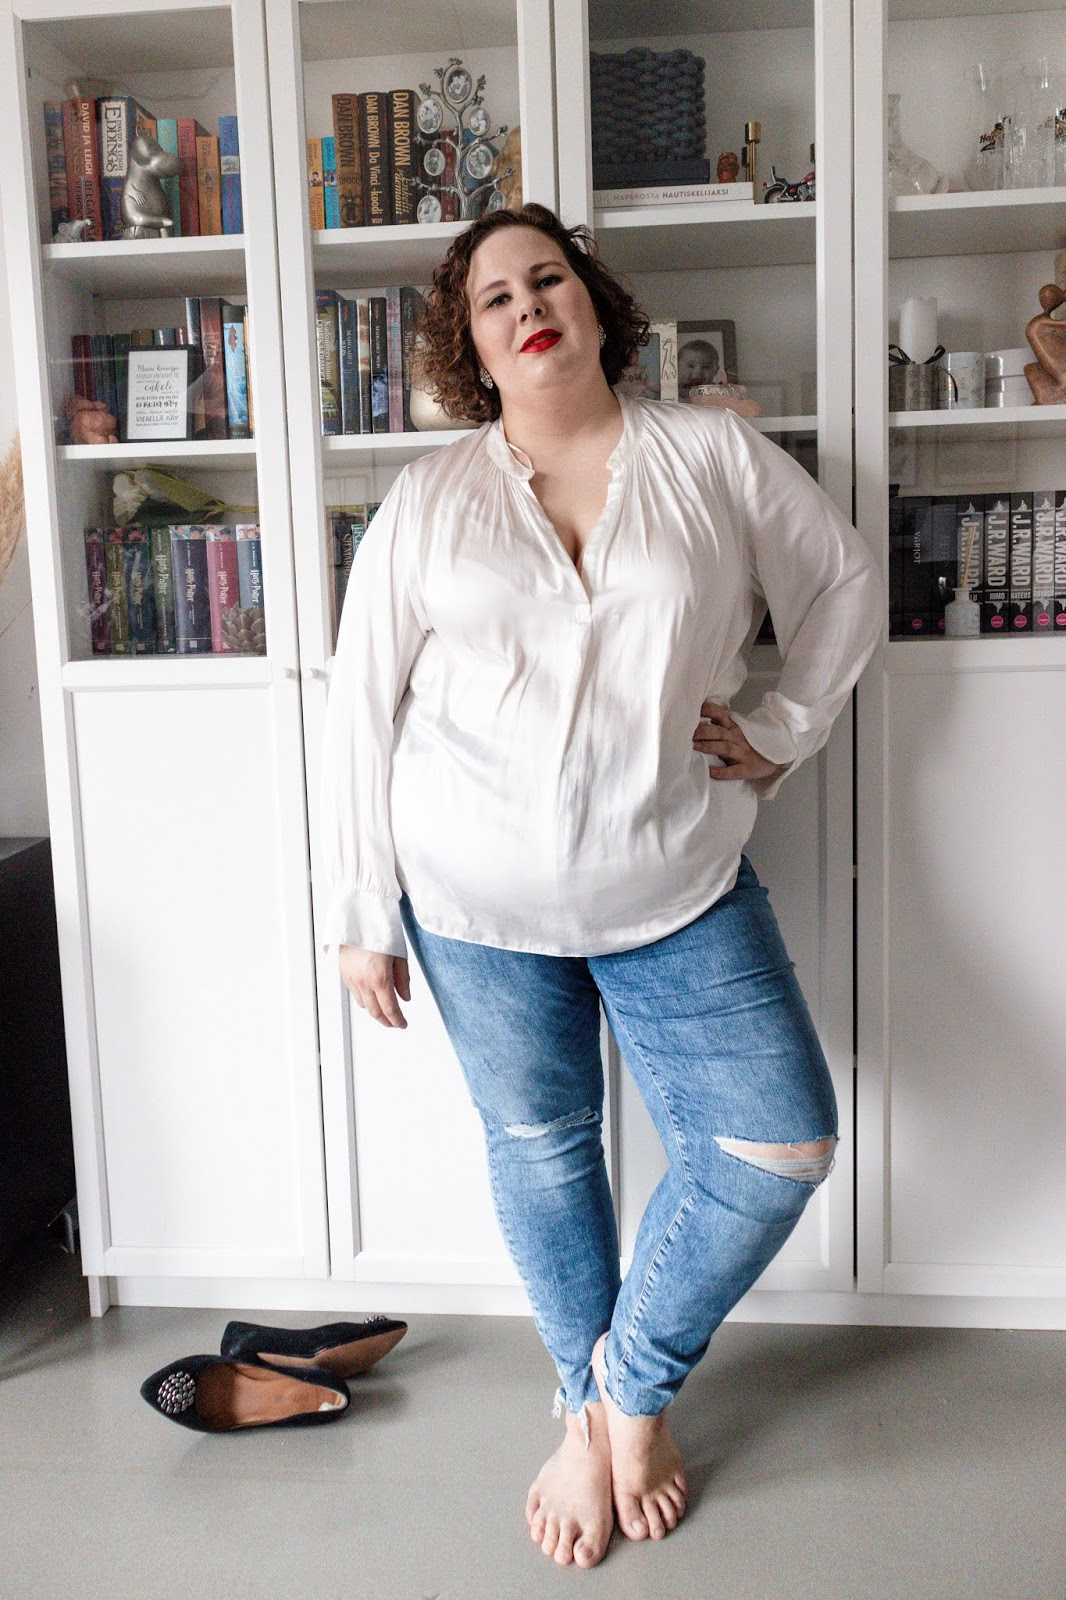 Big mamas home by Jenni S. Eniten vituttaa just nyt